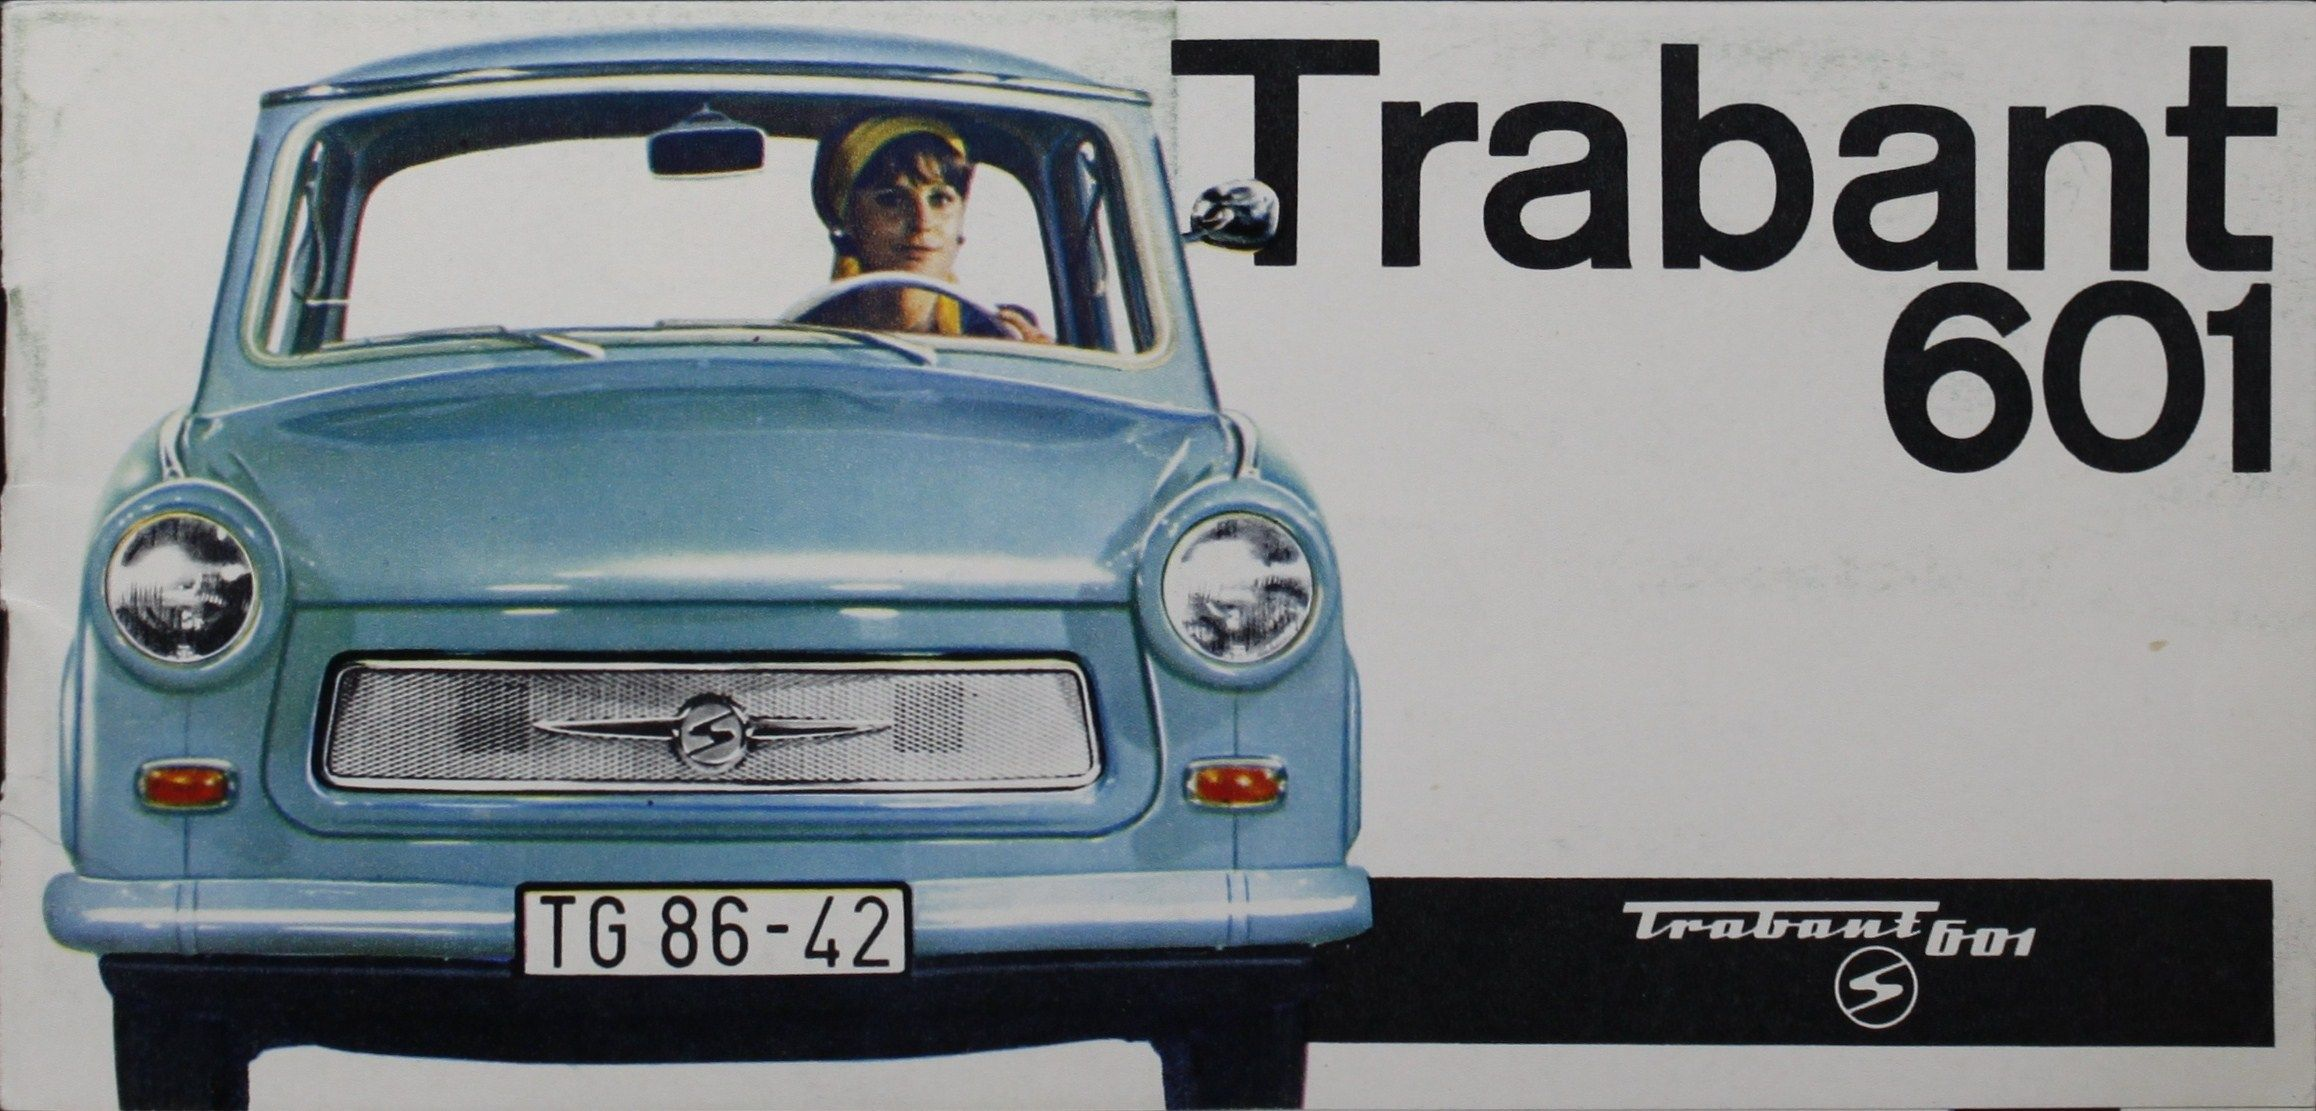 The Trabant Is A Car That Was Produced By Former East German Auto